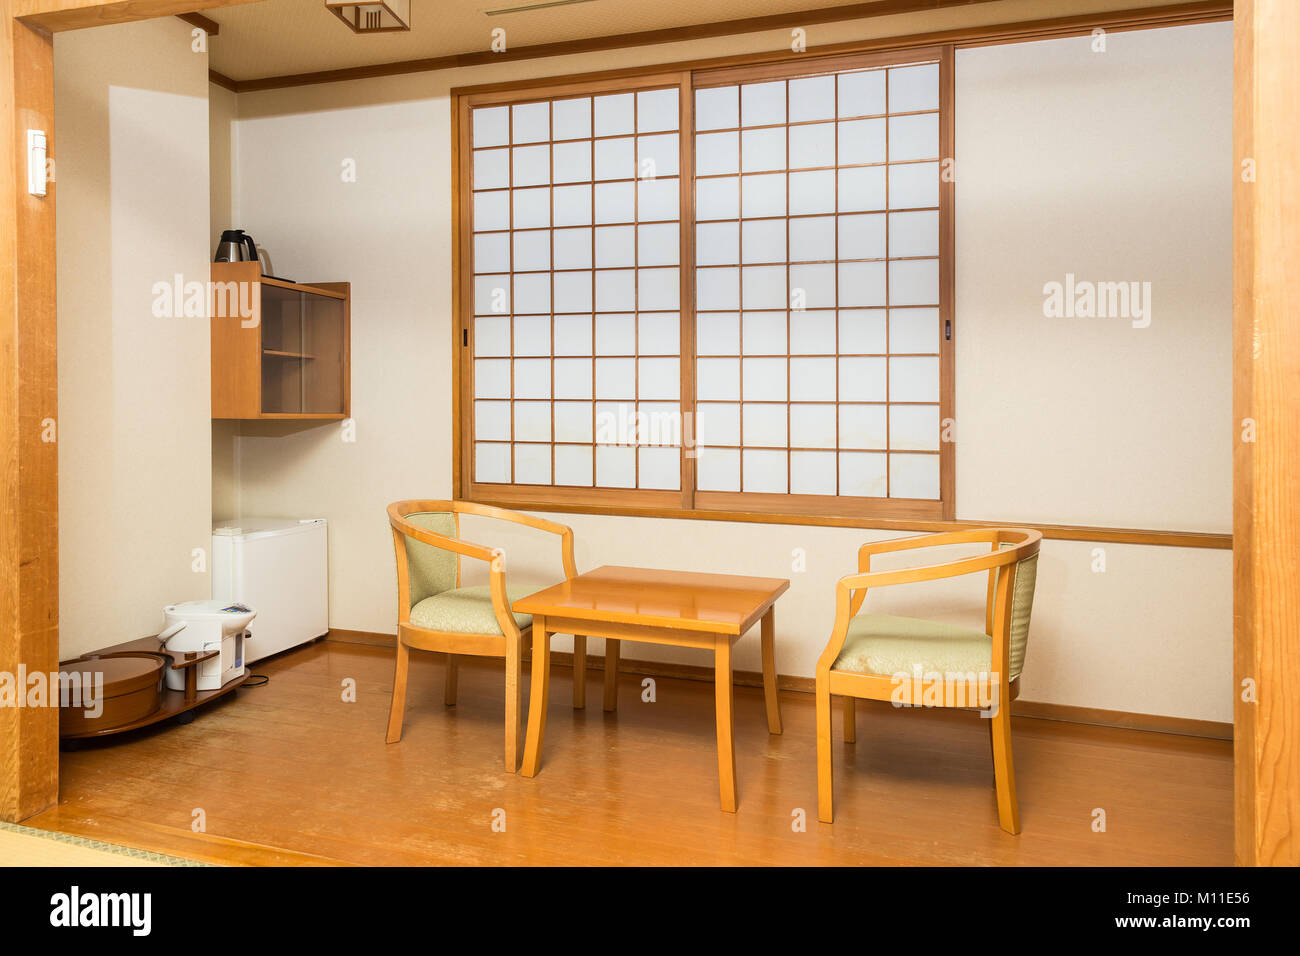 Building japanese furniture Diy Japanese Style Room In Home Or Hotel With Traditional Slideing Windows And Wood Furniture Alamy Japanese Style Room In Home Or Hotel With Traditional Slideing